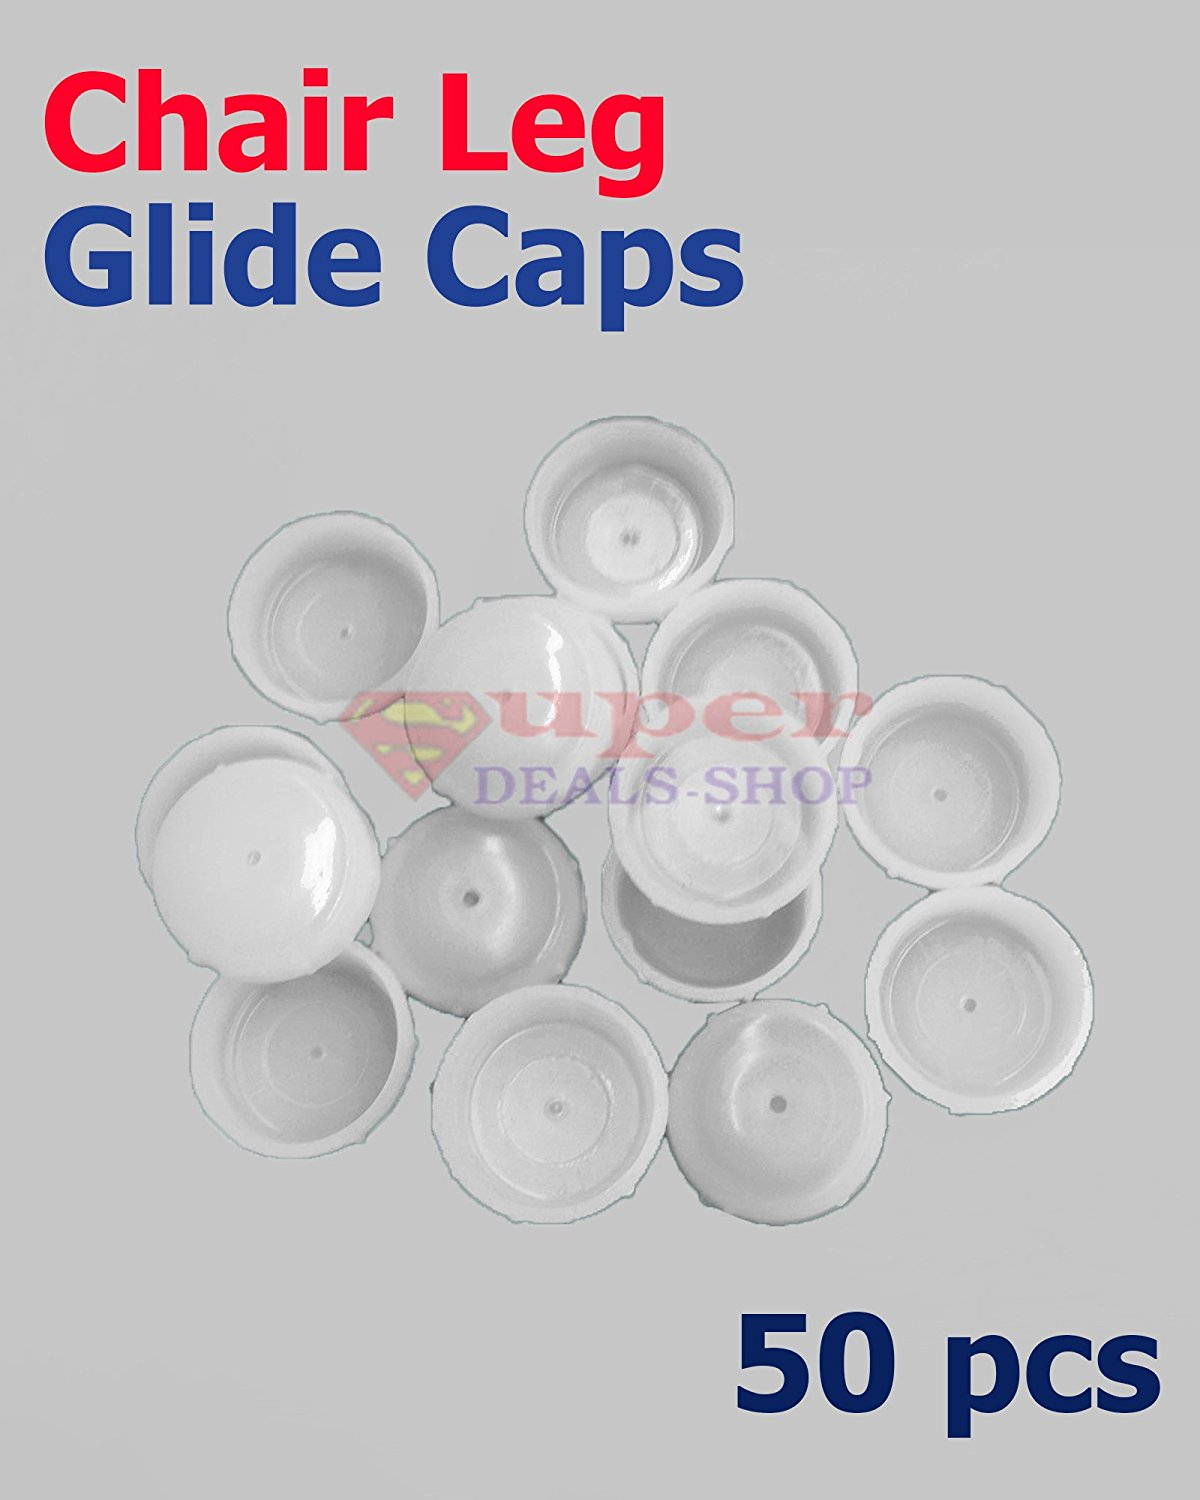 16 Plastic White Wrought Iron Patio Chair Leg Inserts Cups 1.5 Glide Caps 1 1//2